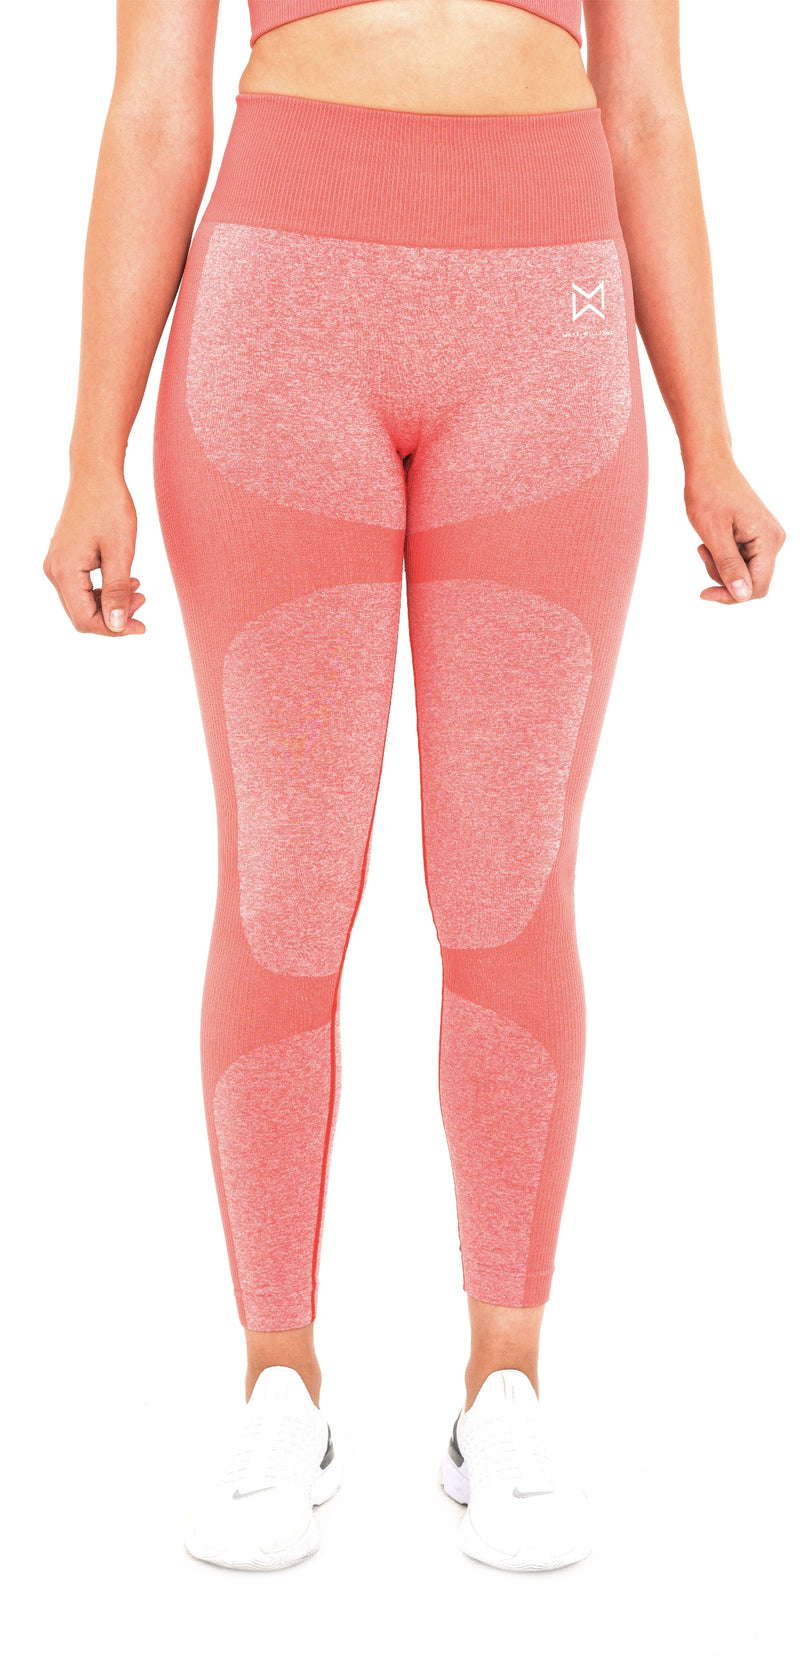 Strawberry Leggings